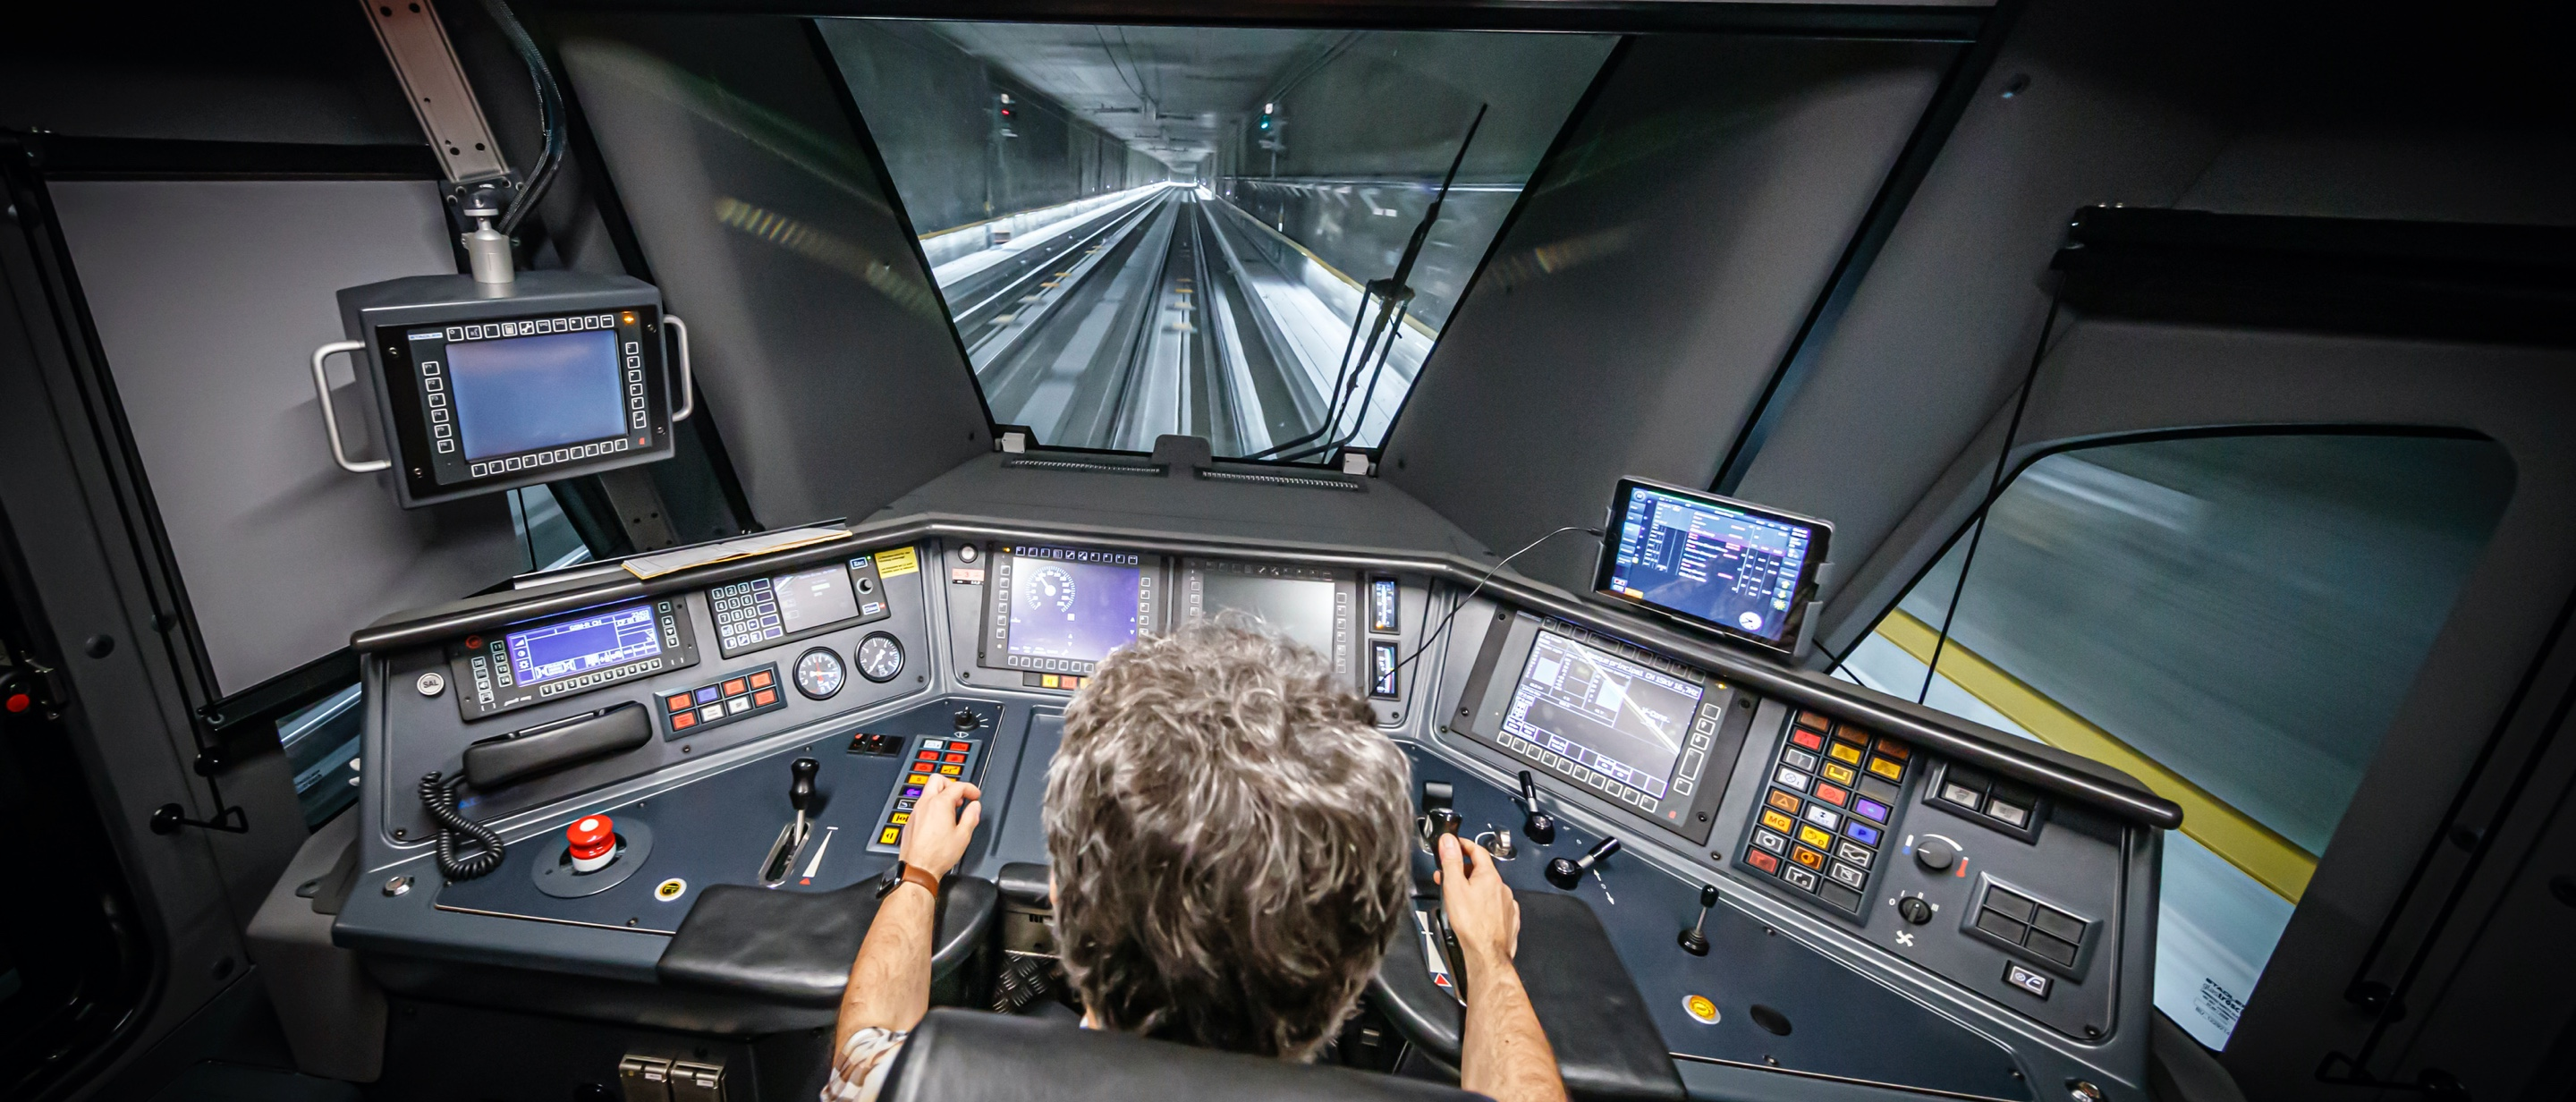 View from within the drivers cabin of a modern train